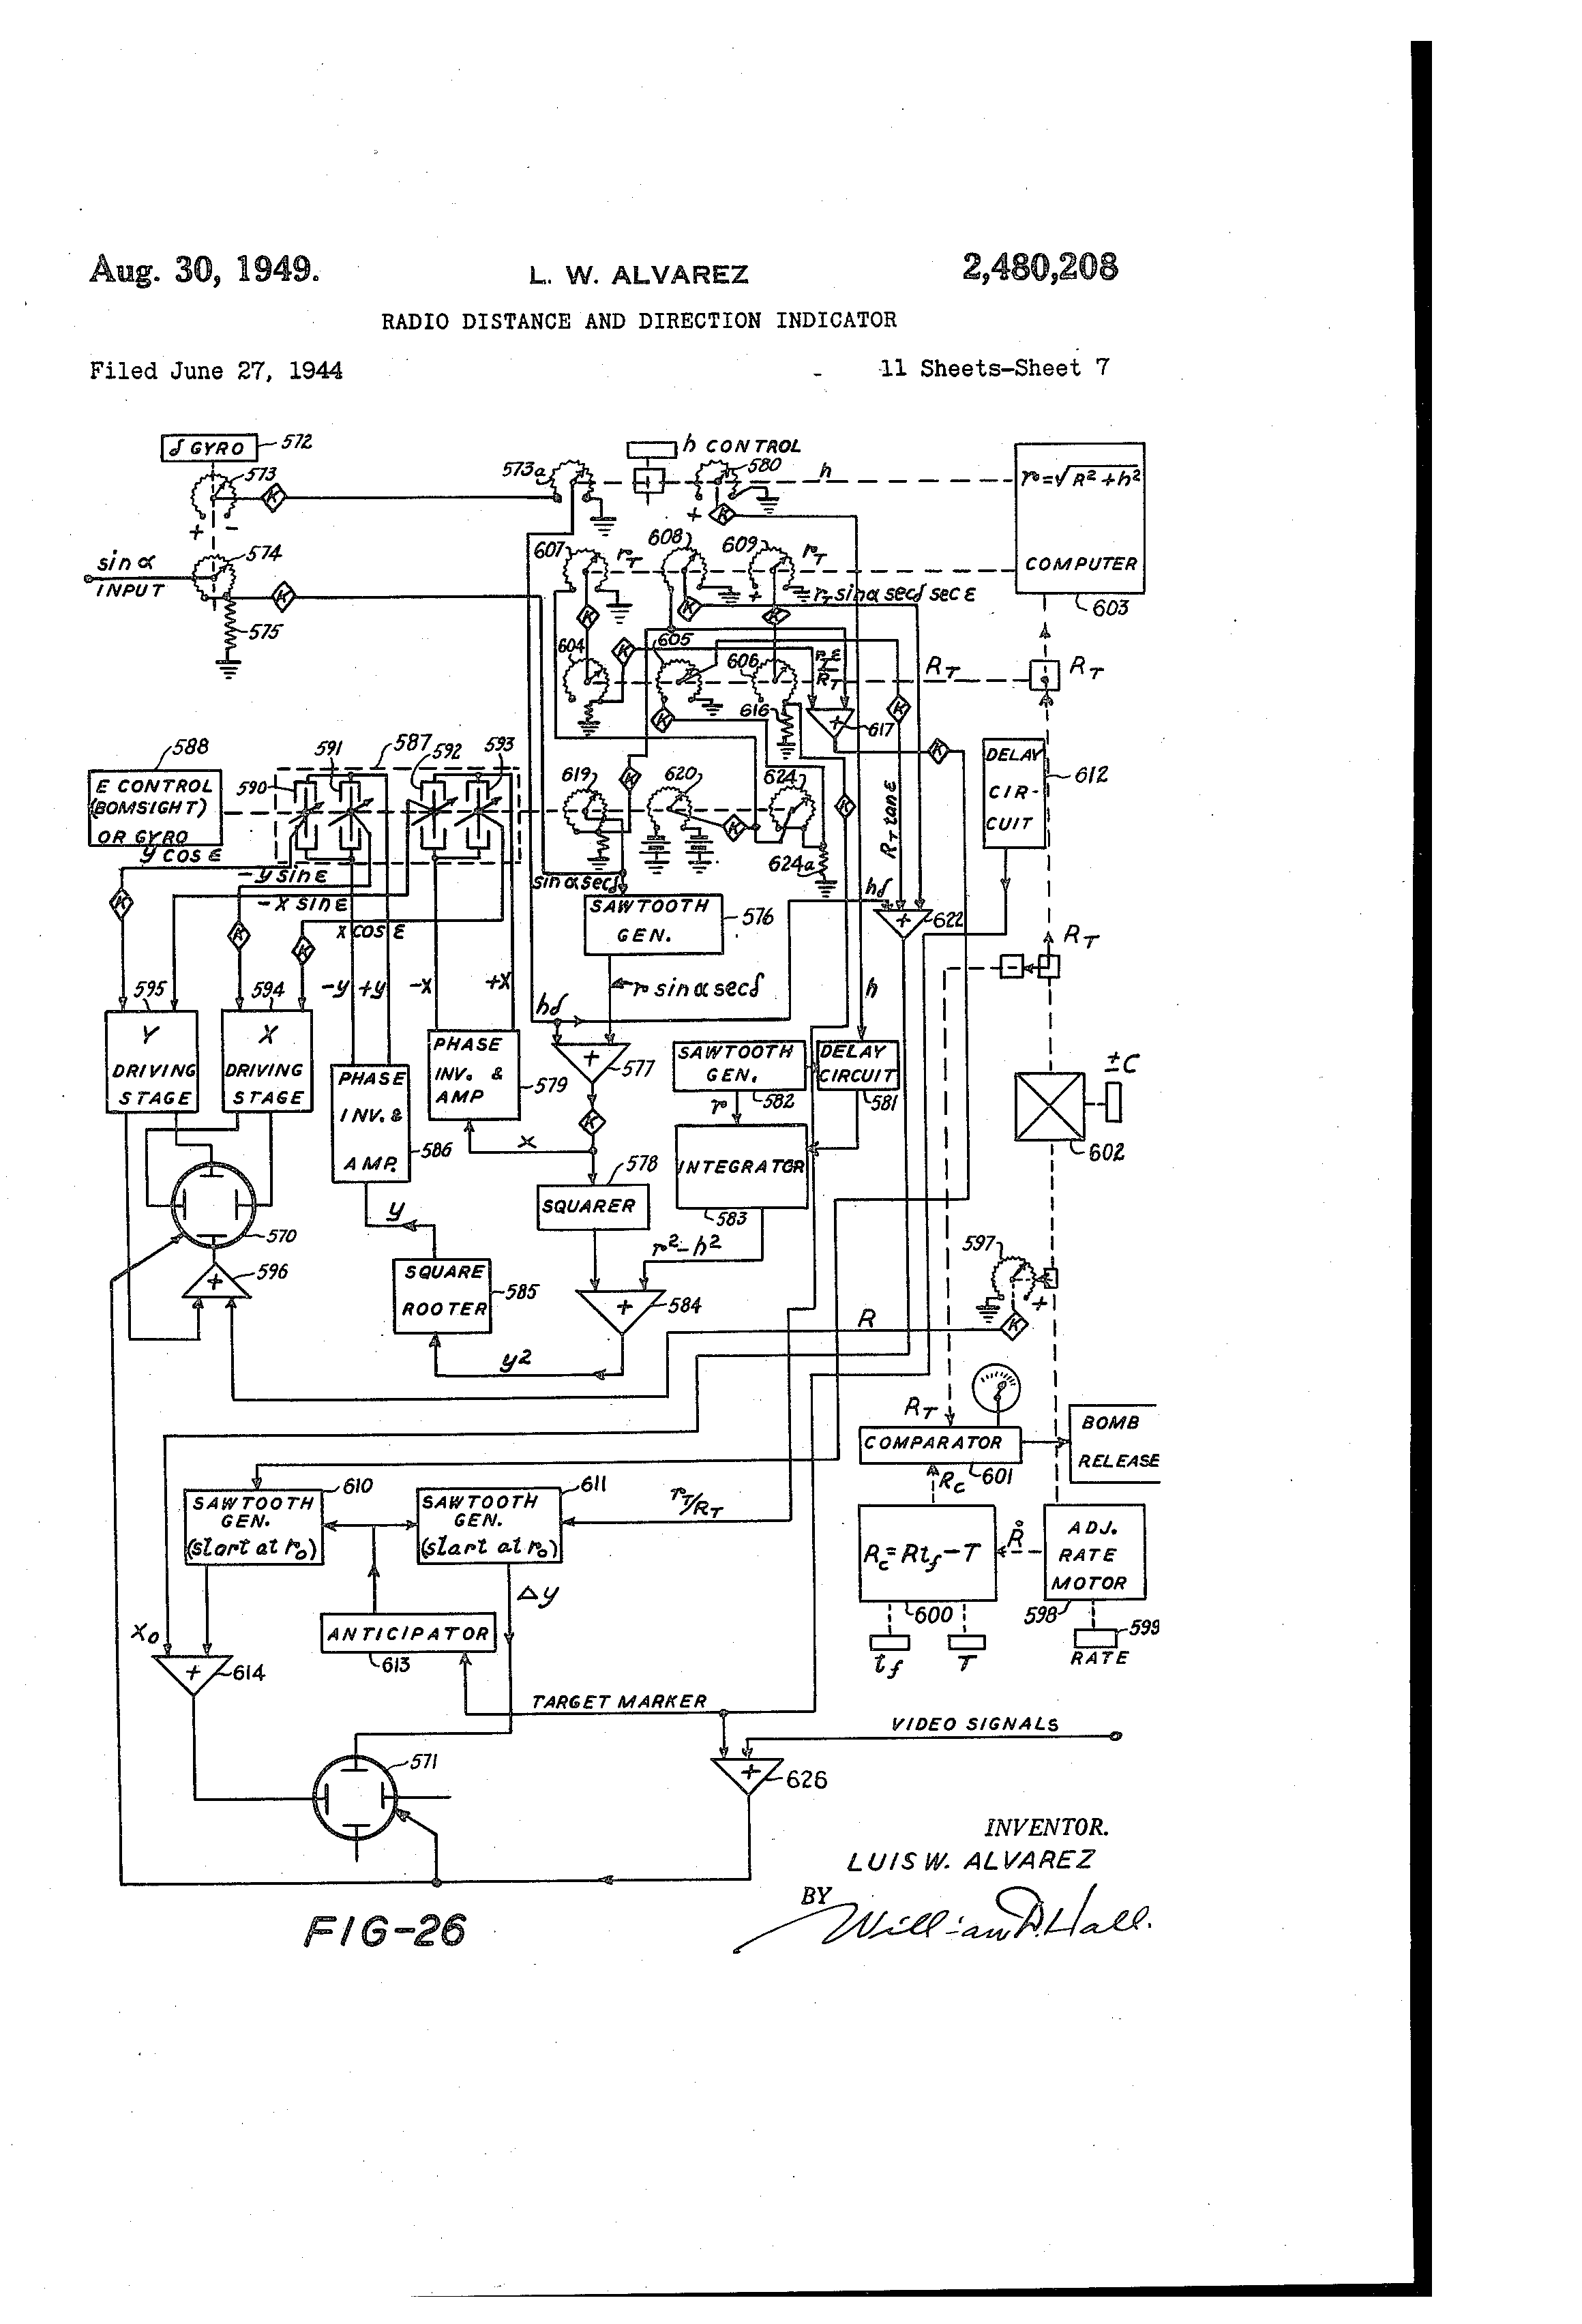 bendix ec 30 wiring diagram   27 wiring diagram images